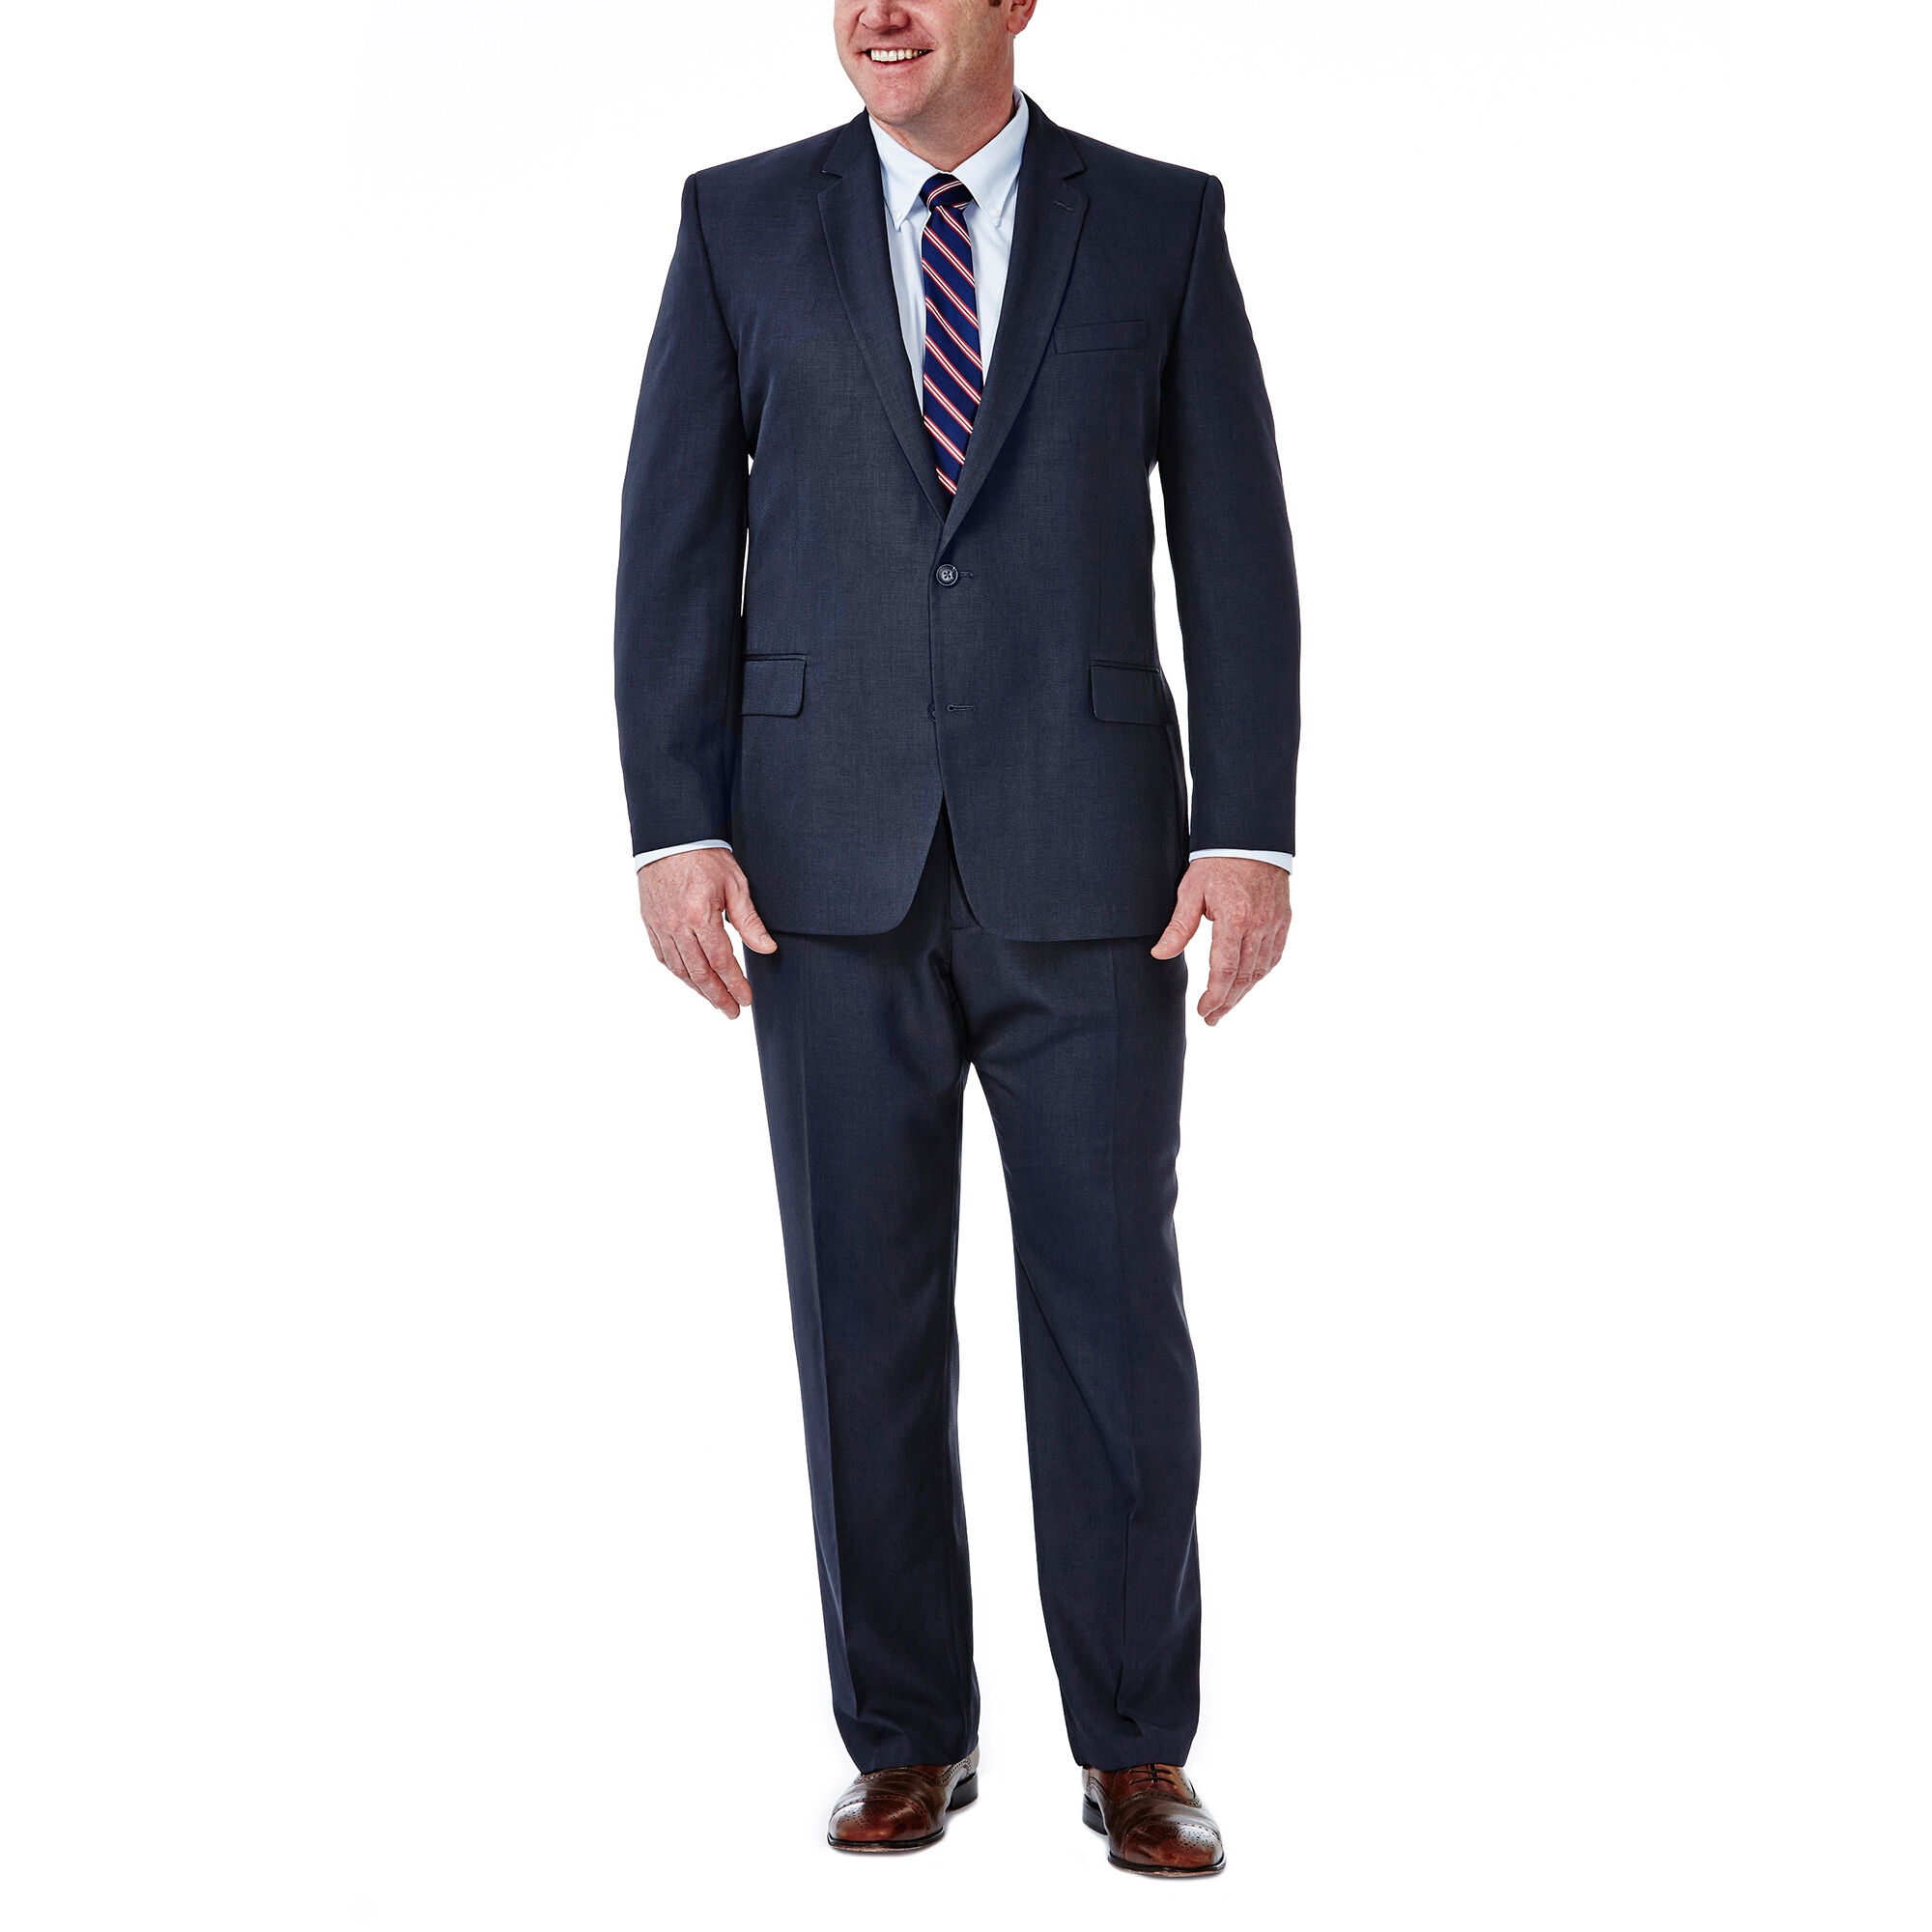 Haggar Big & Tall Travel Performance Suit Separates Jacket